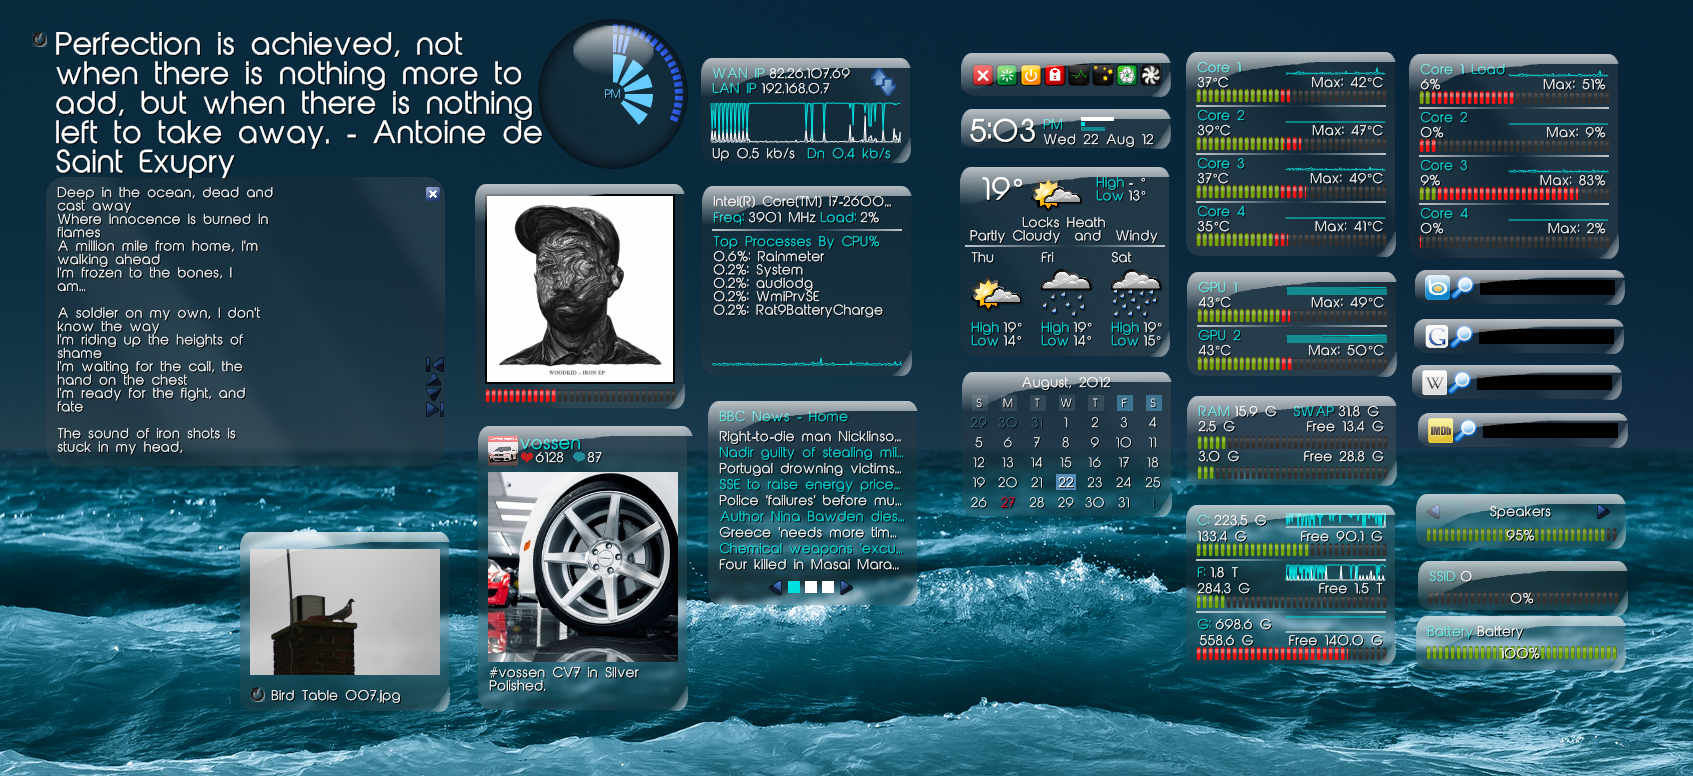 Cobolt rainmeter theme for windows7 for Bureau windows 7 rainmeter